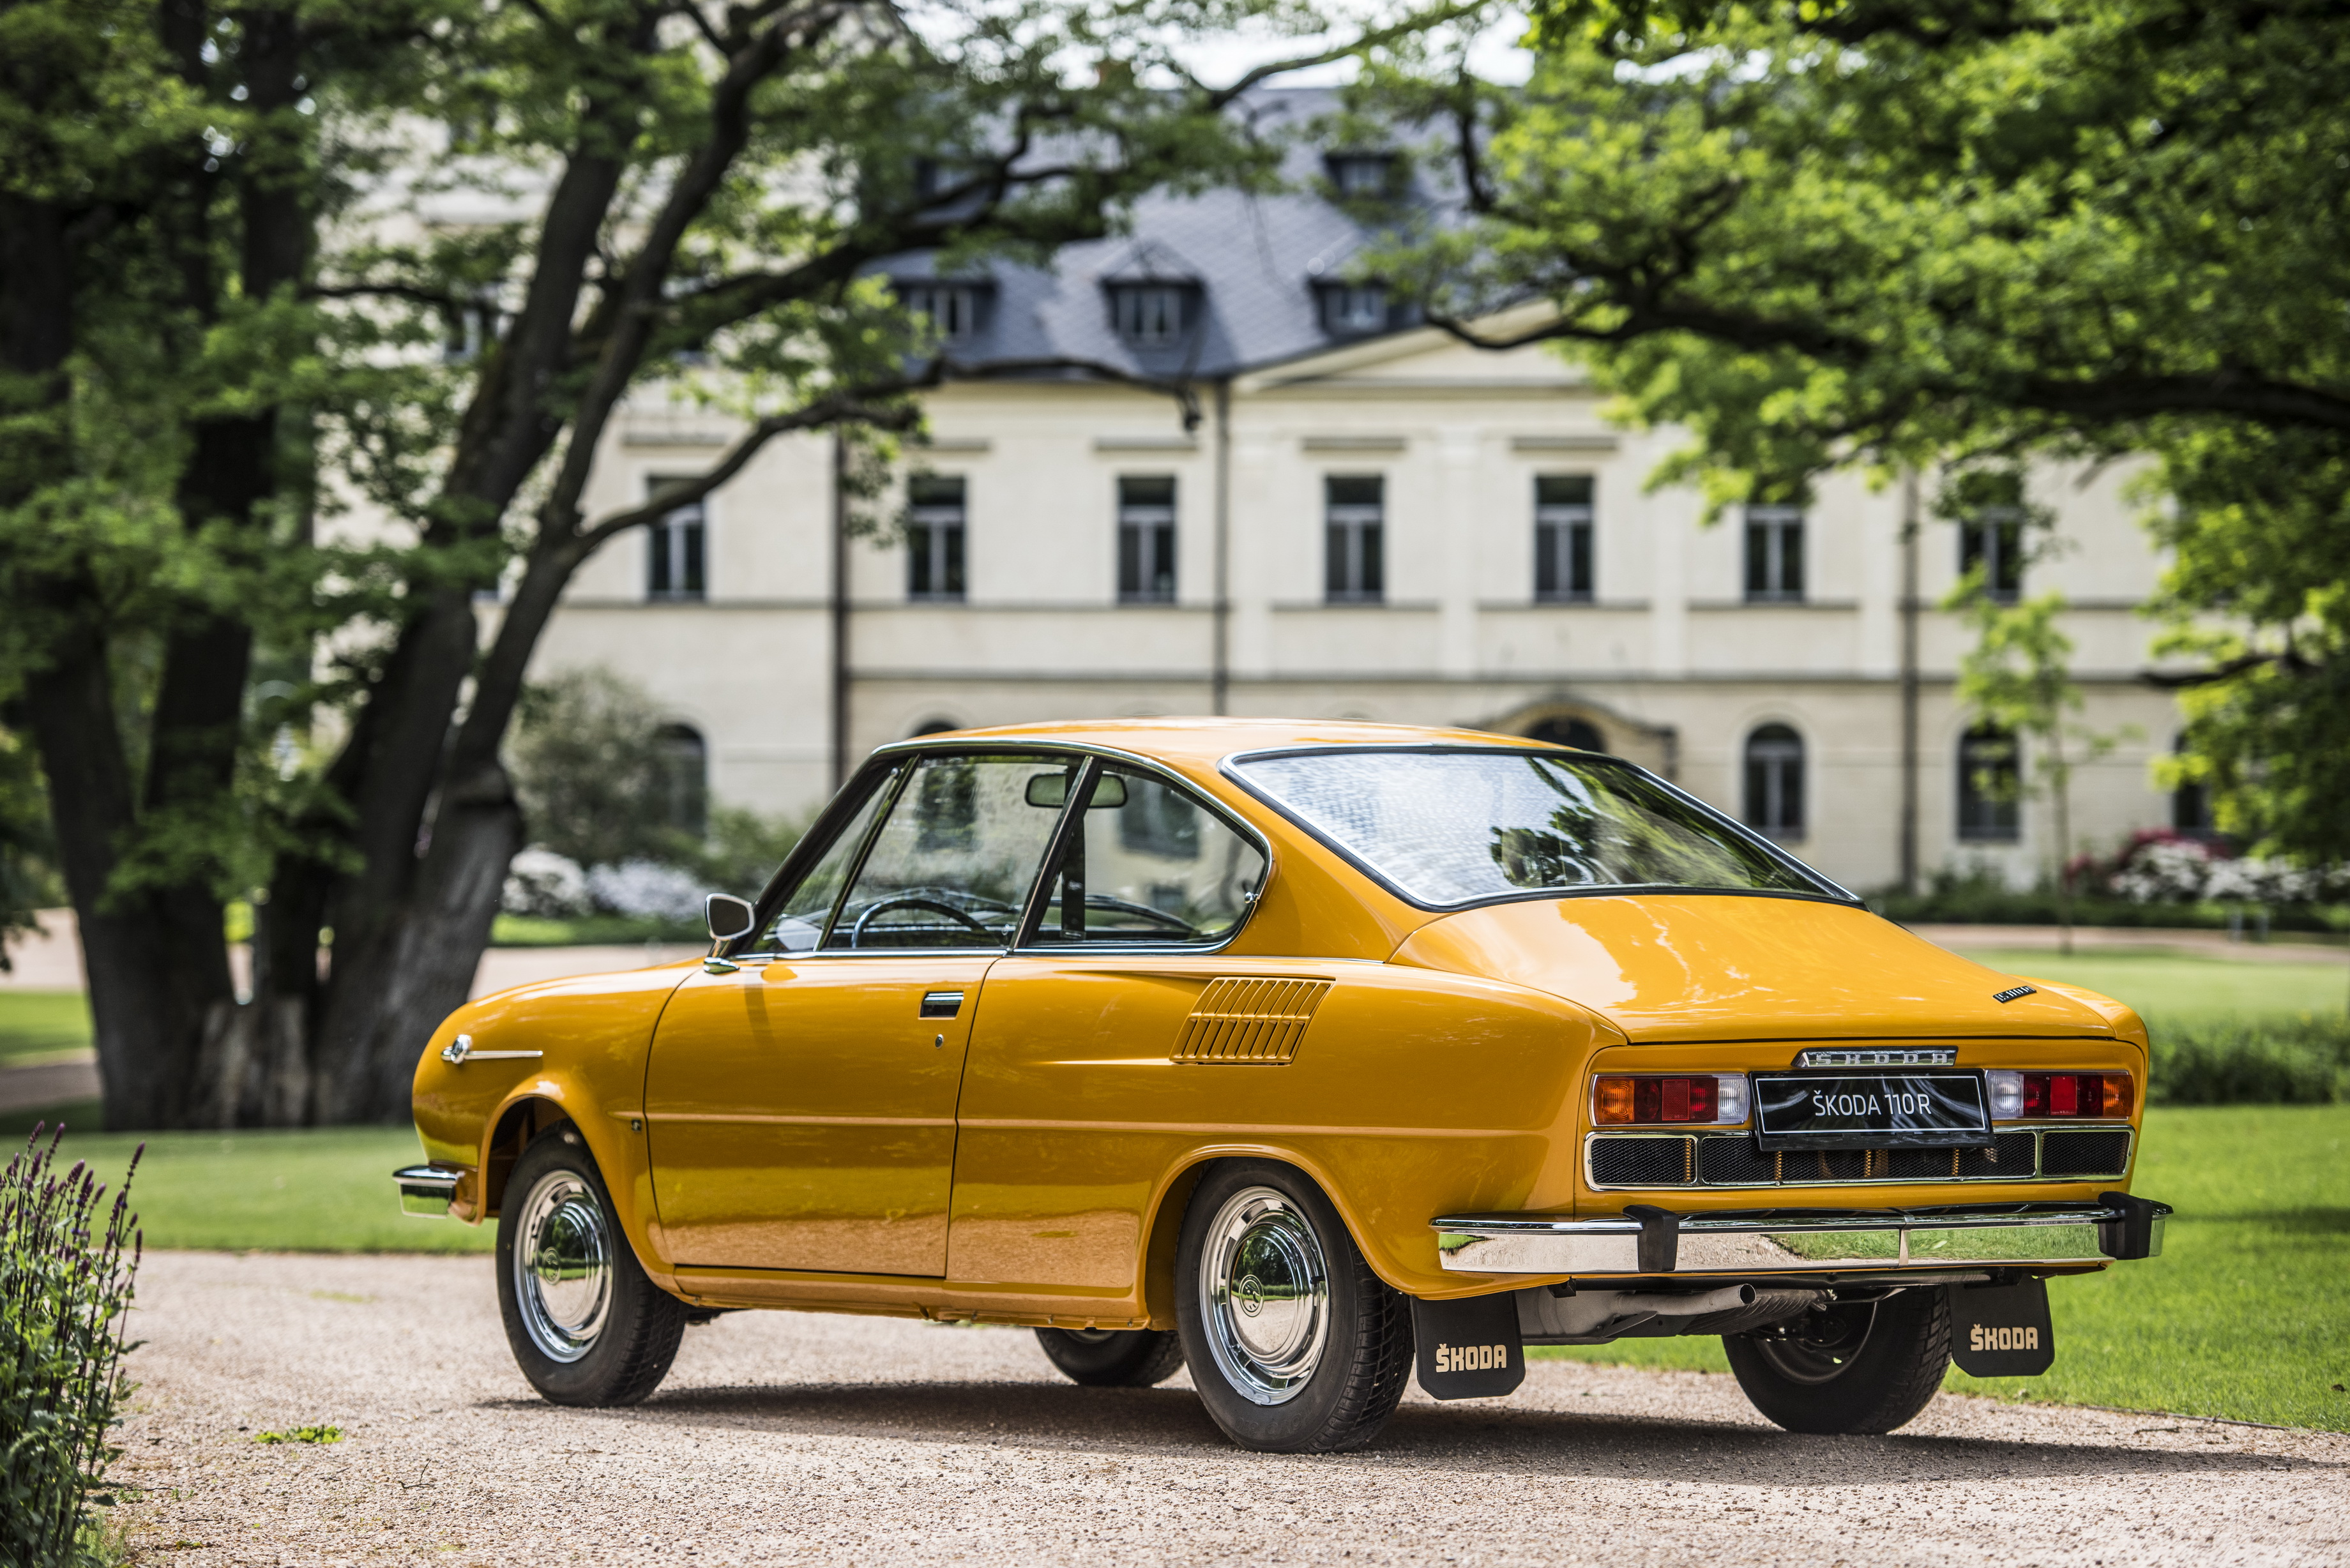 50 years of the 110 R: Half a century ago, SKODA presented its legendary sports coupé - Image 4